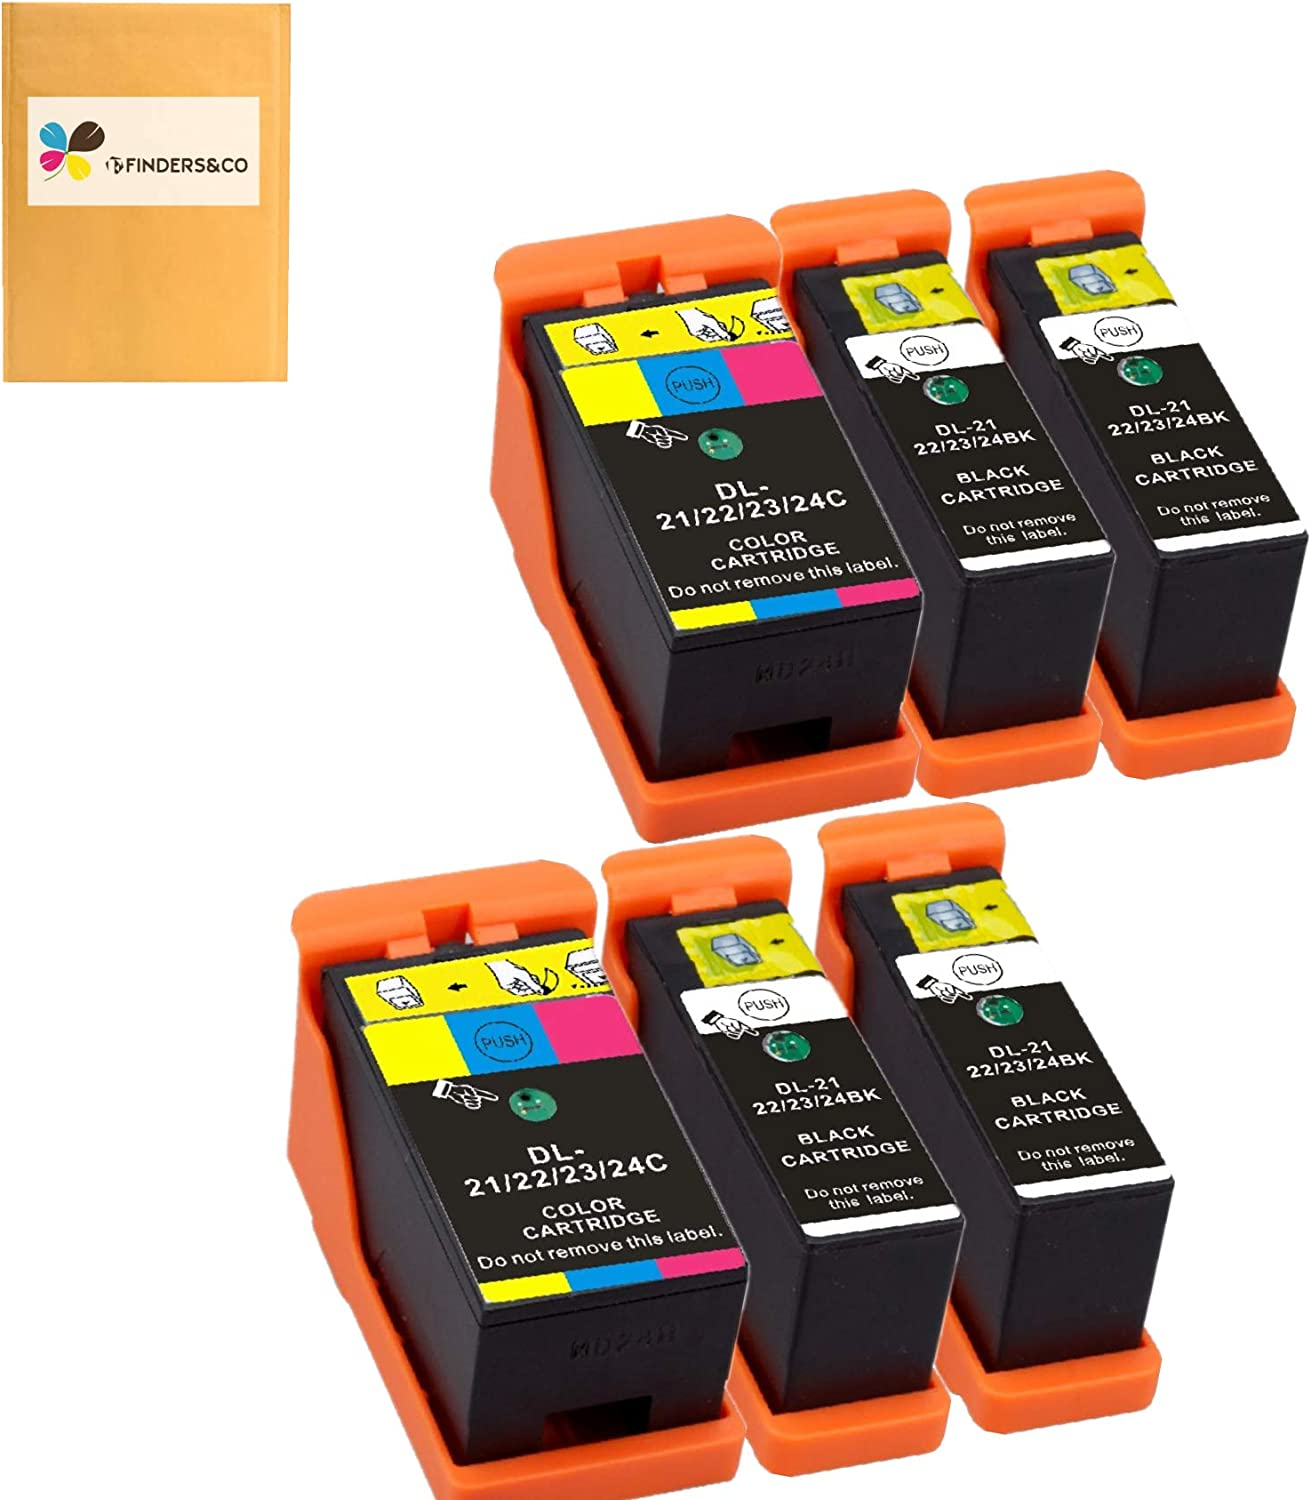 Compatible Dell Series 21 Ink Cartridges Replacement for DELL V313 V313W V515W P513W P713W V715W Printer (4BK, 2Color)